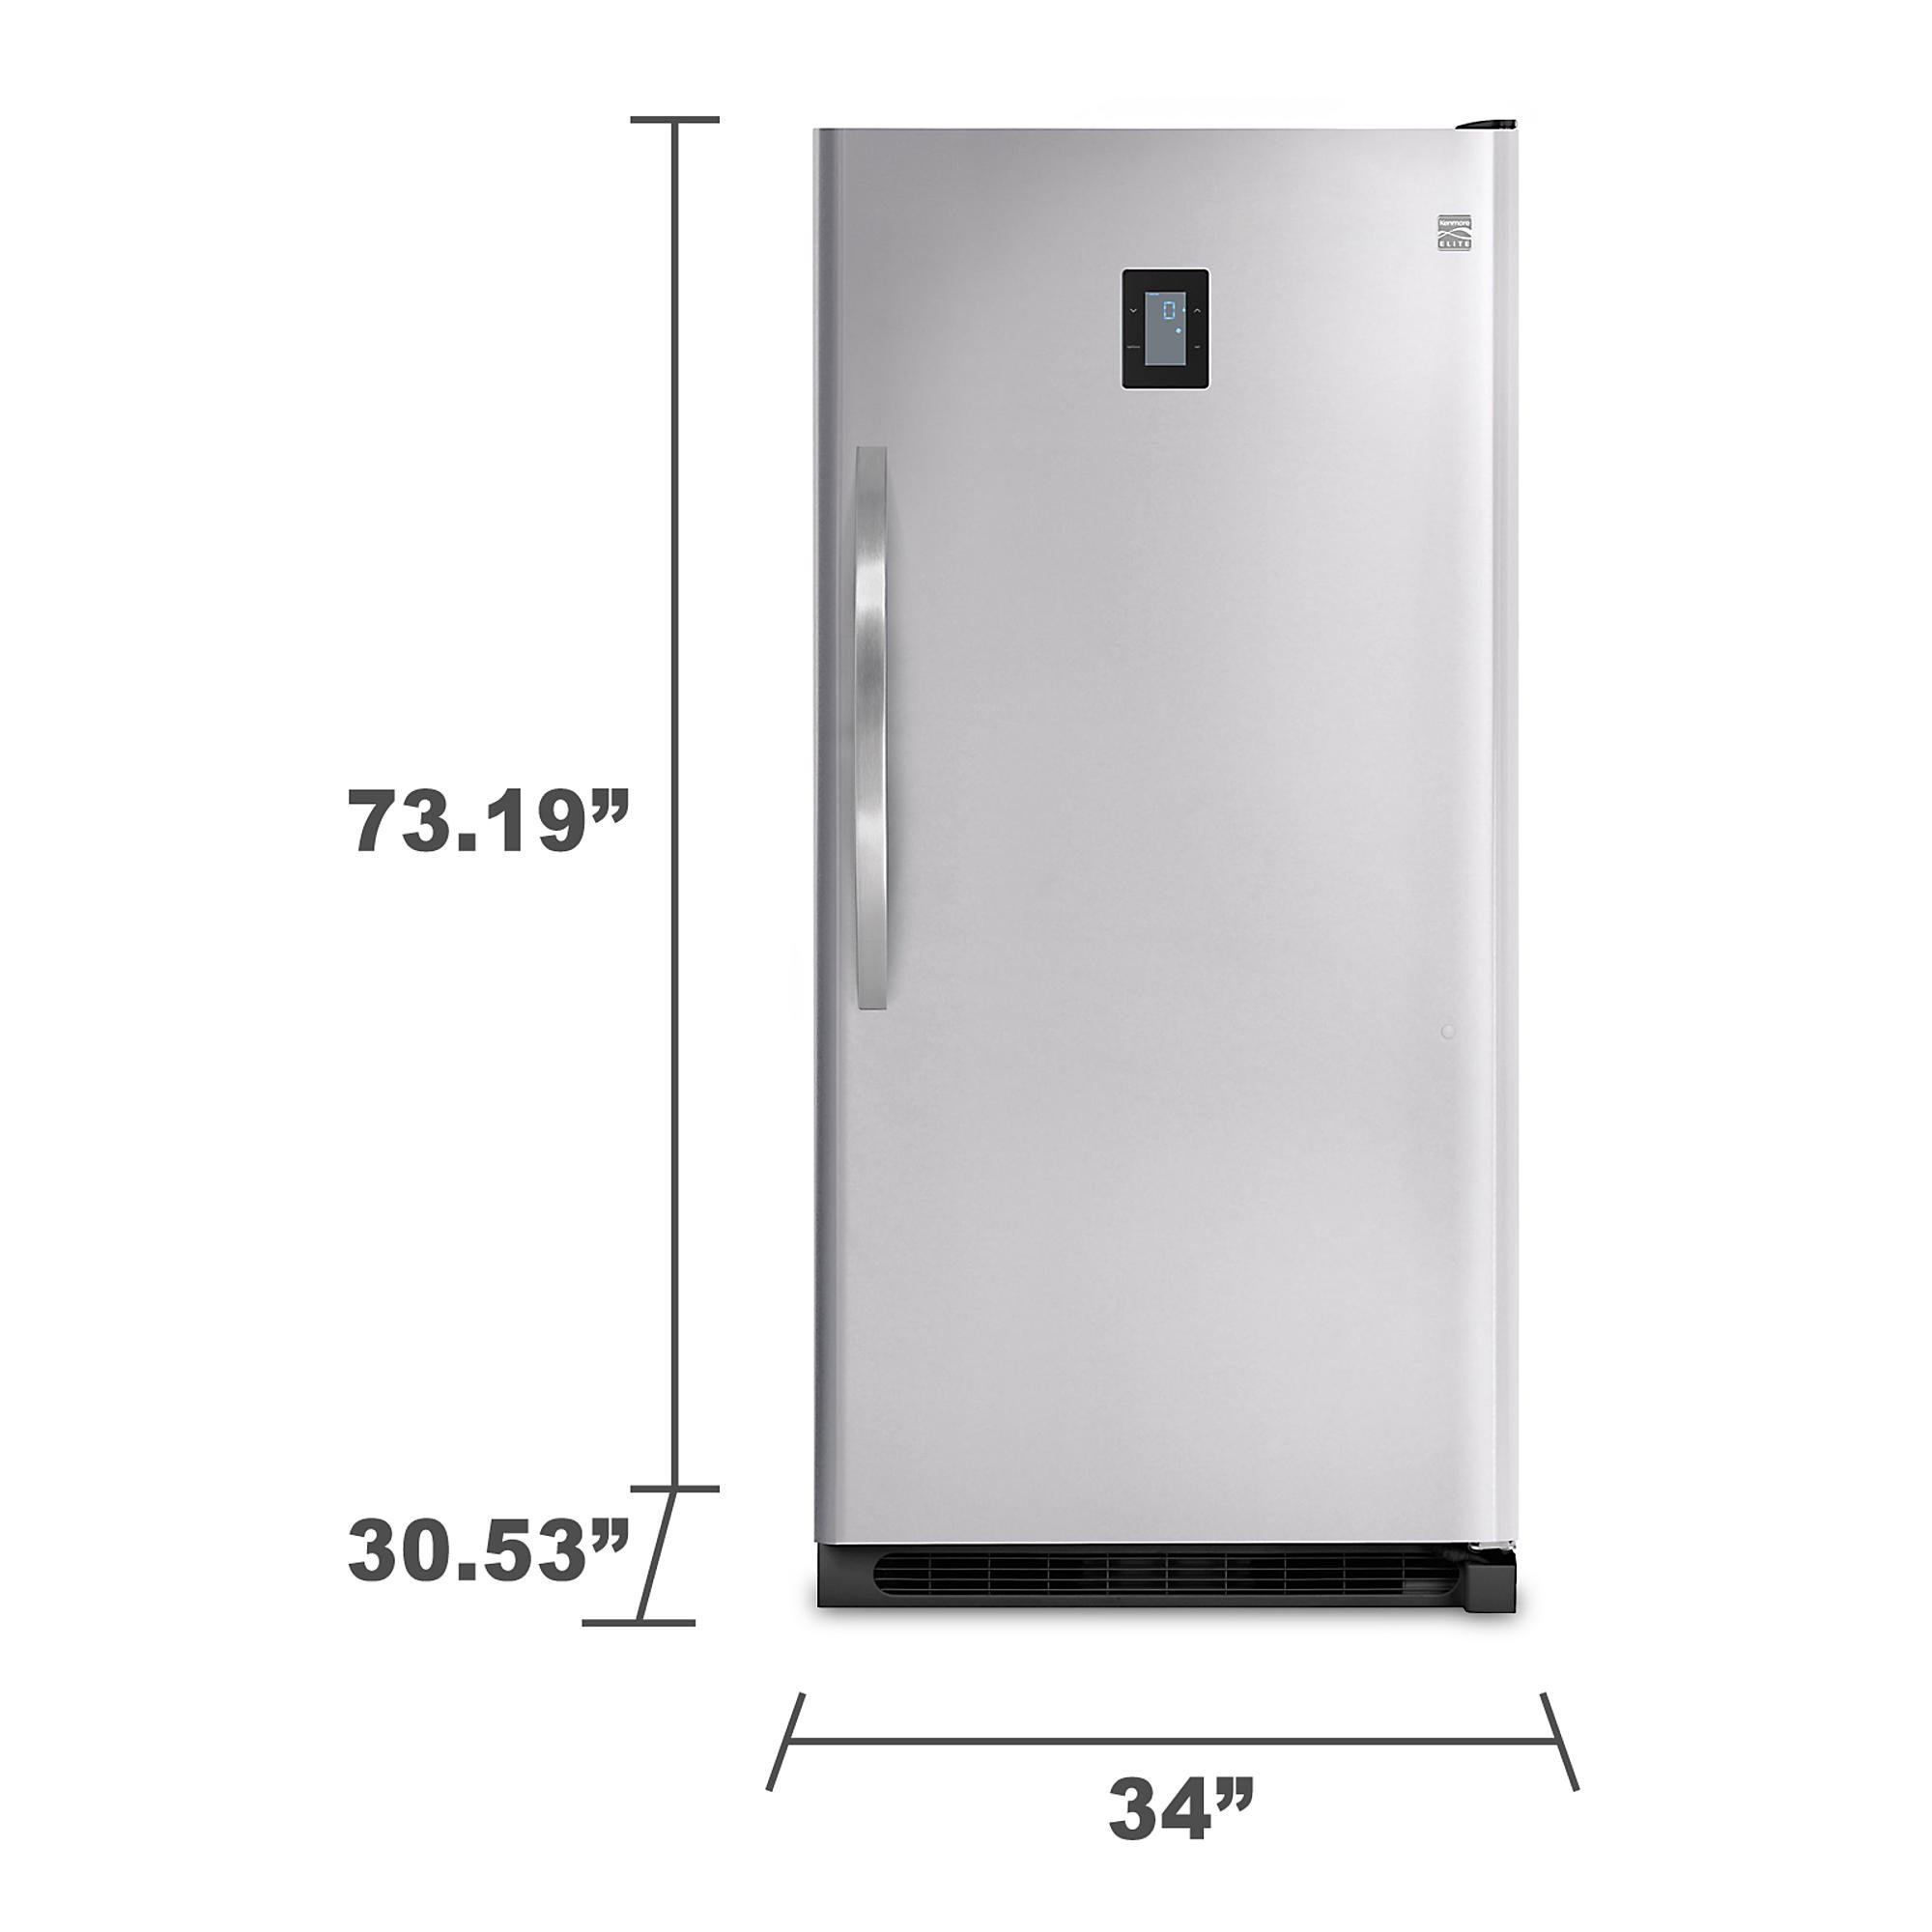 Kenmore Elite 27003 20.5 cu. ft. Upright Freezer - Stainless Steel